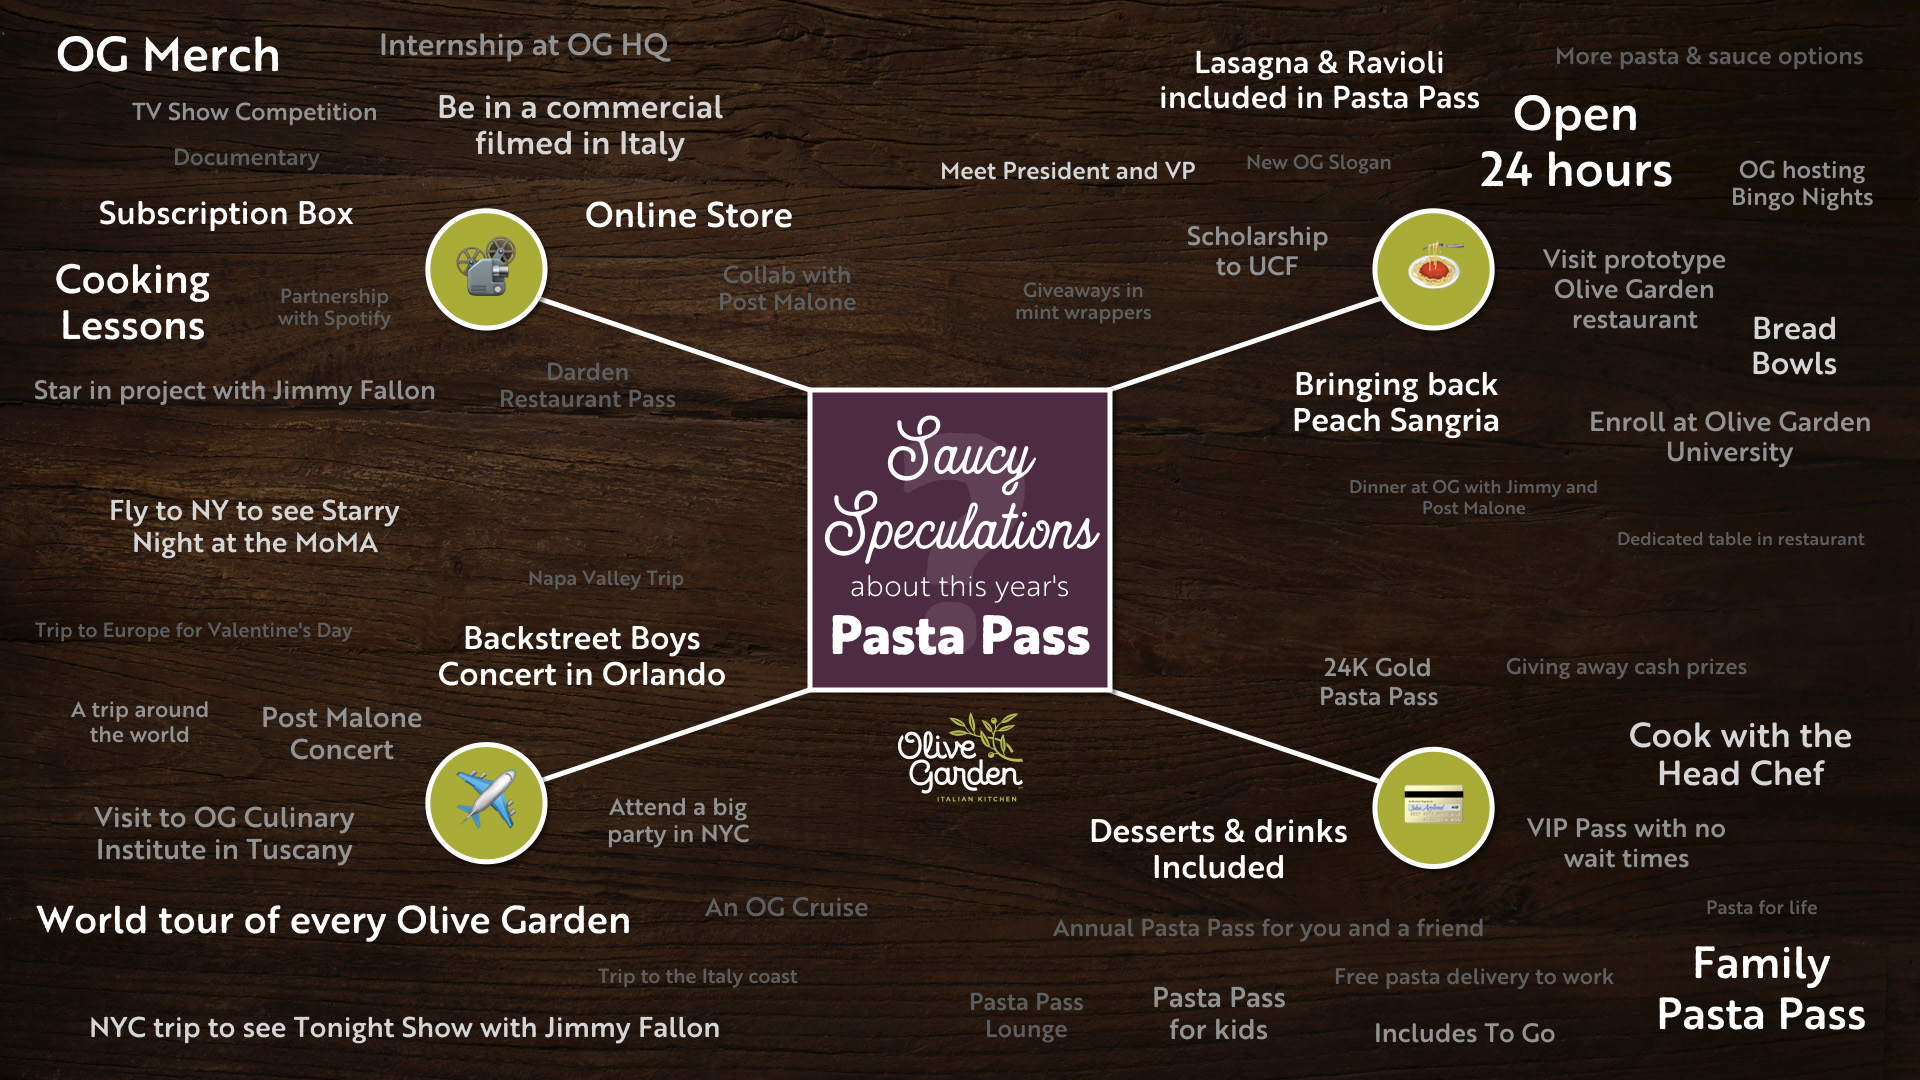 Olive Garden turned to social media to announce the return of Pasta Pass through an interactive photo full of riddles for the most loyal Olive Garden guests.